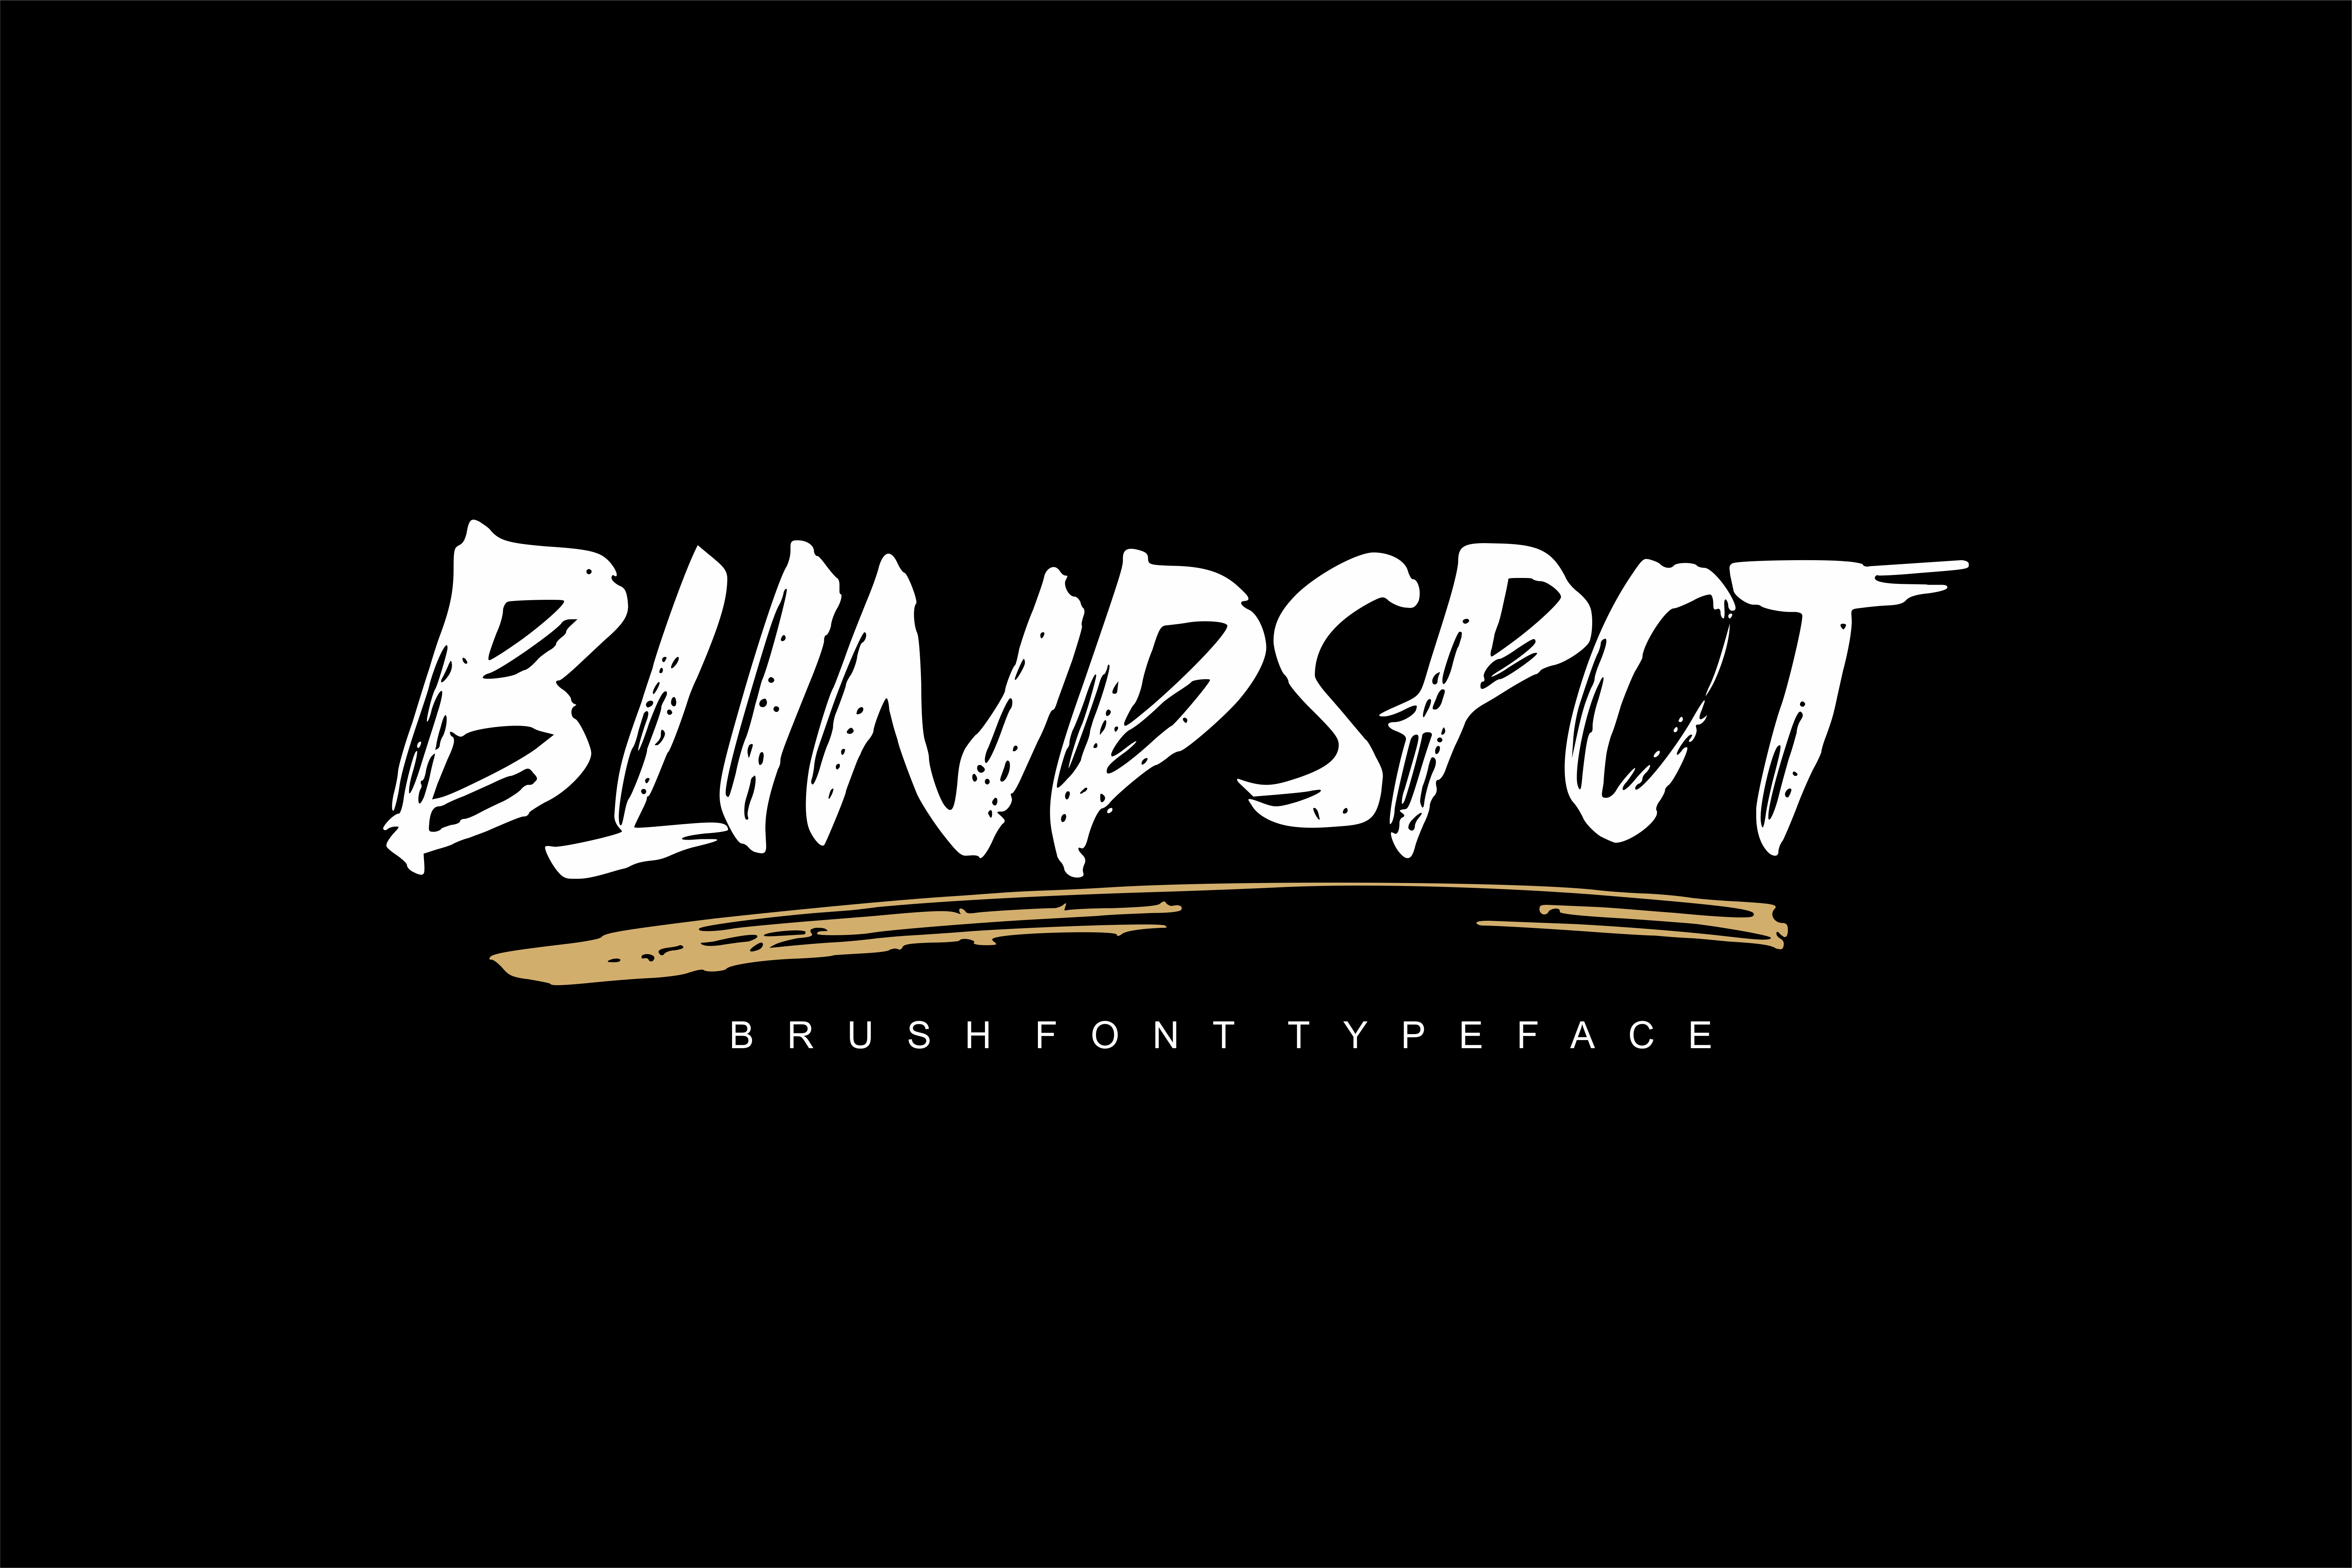 Download Free Blindspot Font By Will Letter Creative Fabrica for Cricut Explore, Silhouette and other cutting machines.